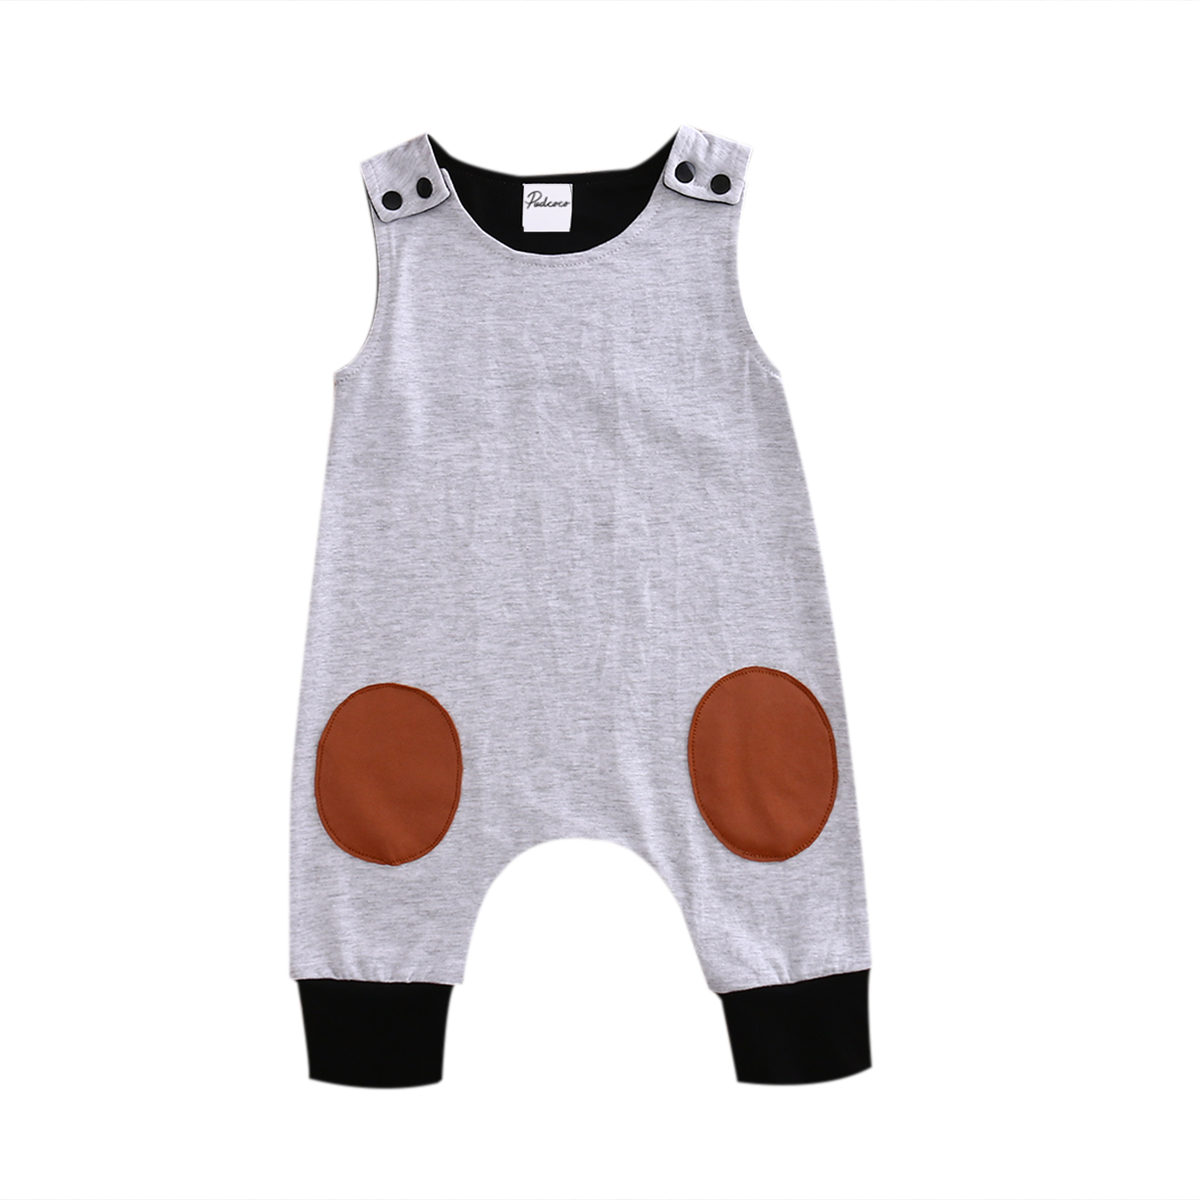 Pudcoco 2017 Newborn Kids Baby Boys Girls Clothes Sleeveless Gray Romper Jumpsuit Summer Cute Cotton Outfits pudcoco newborn infant baby girls clothes short sleeve floral romper headband summer cute cotton one piece clothes